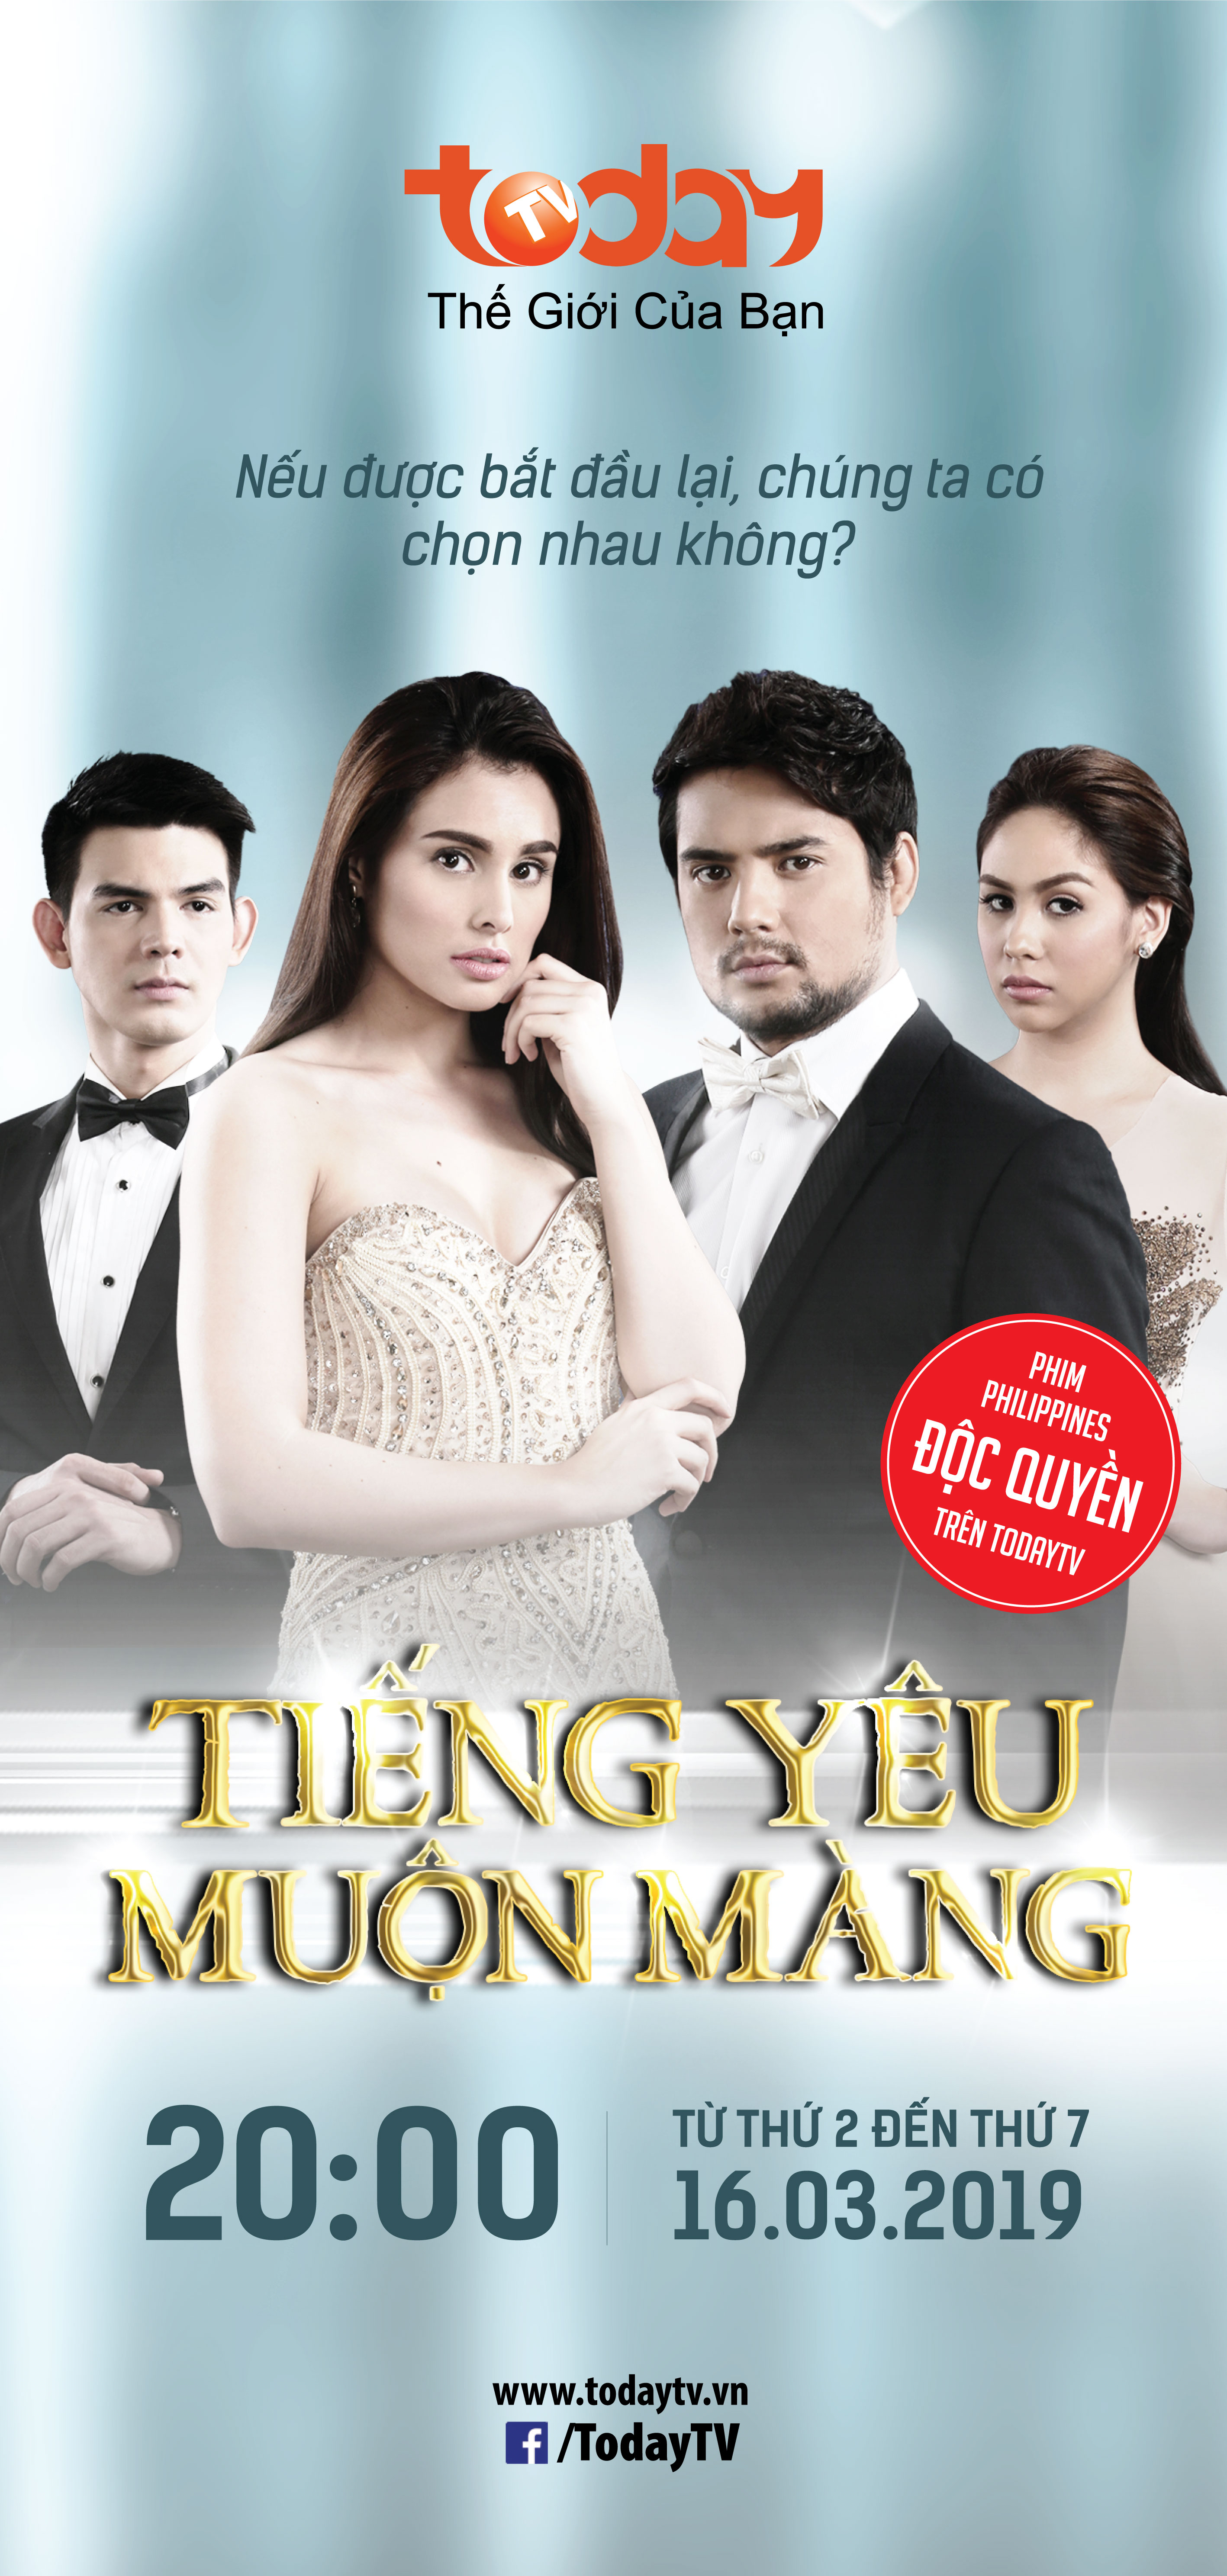 Poster_Tiengyeumuonmang_Thangmay